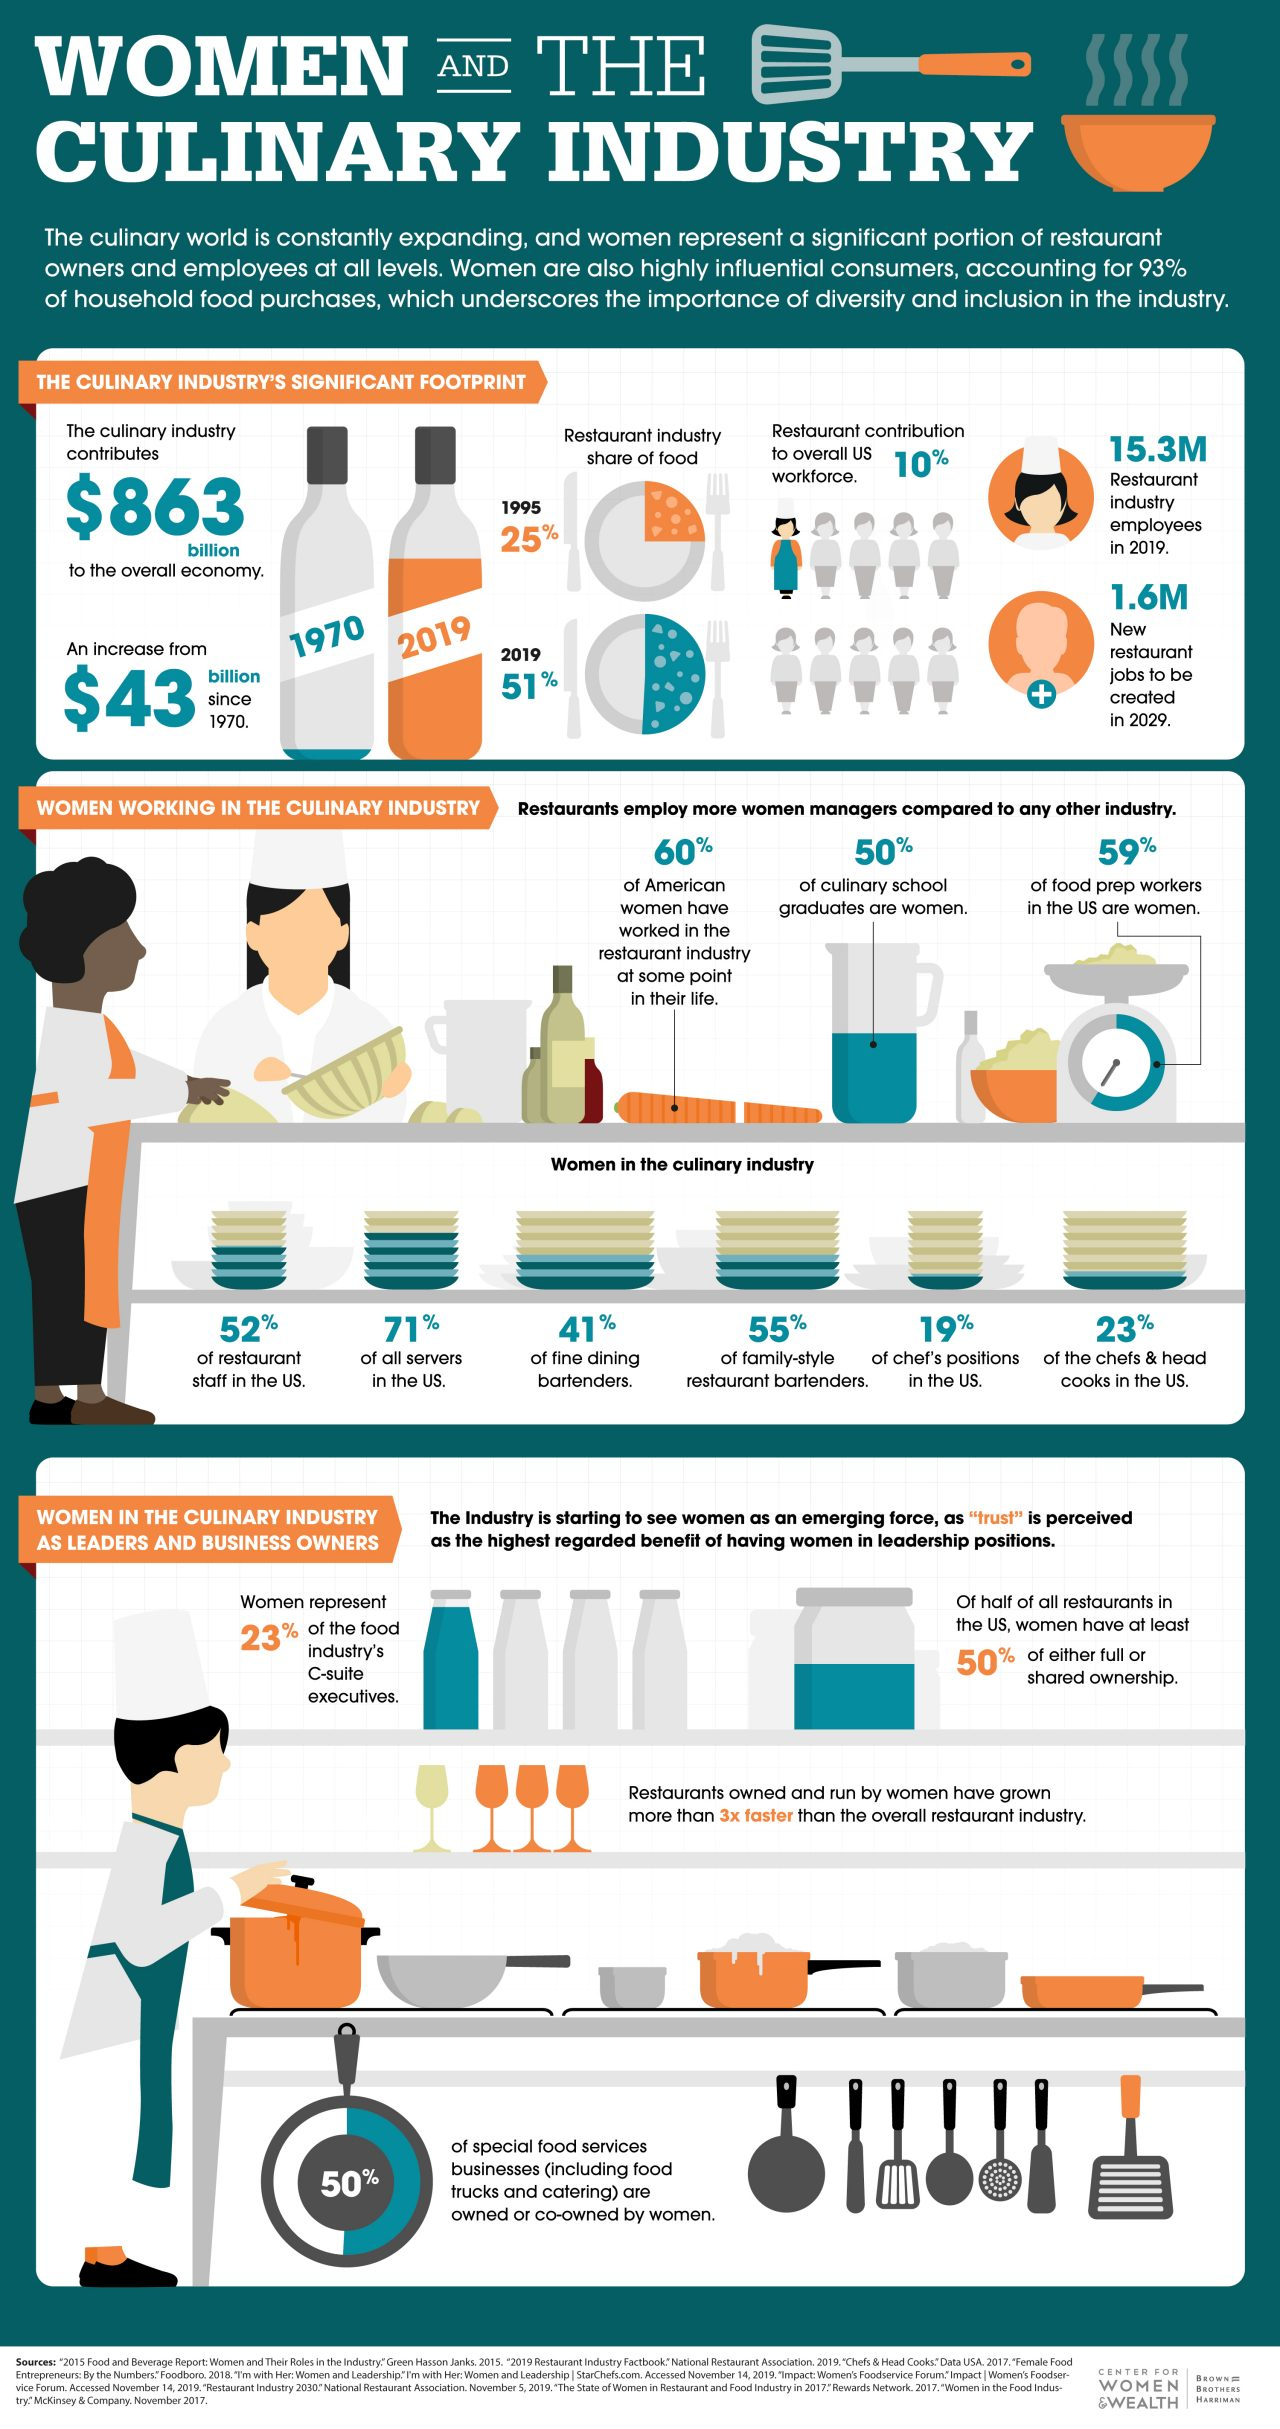 Statistics regarding women's impact on the culinary industry as both workers and as consumers